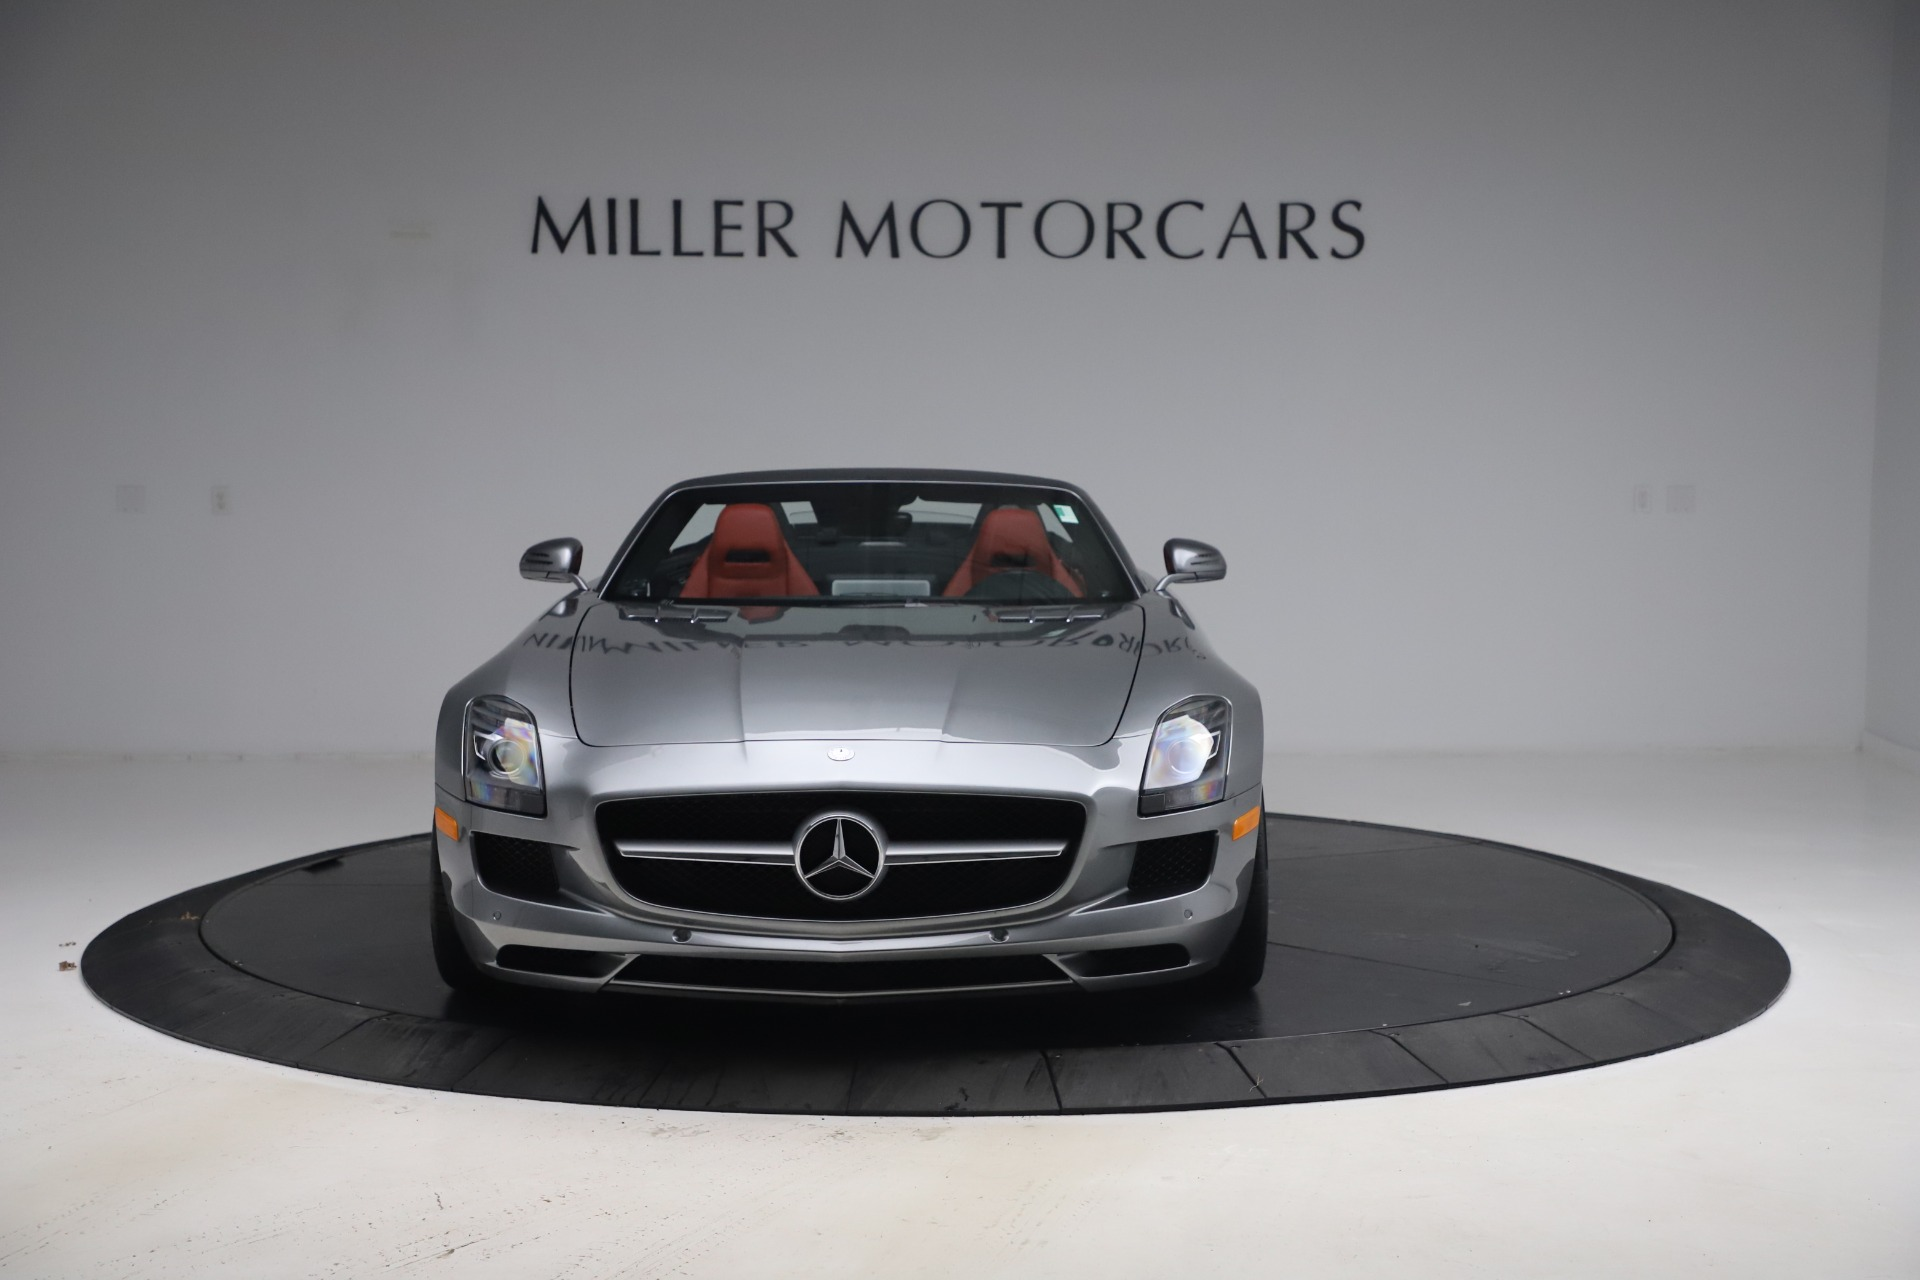 Used 2012 Mercedes-Benz SLS AMG  For Sale In Westport, CT 3189_p18